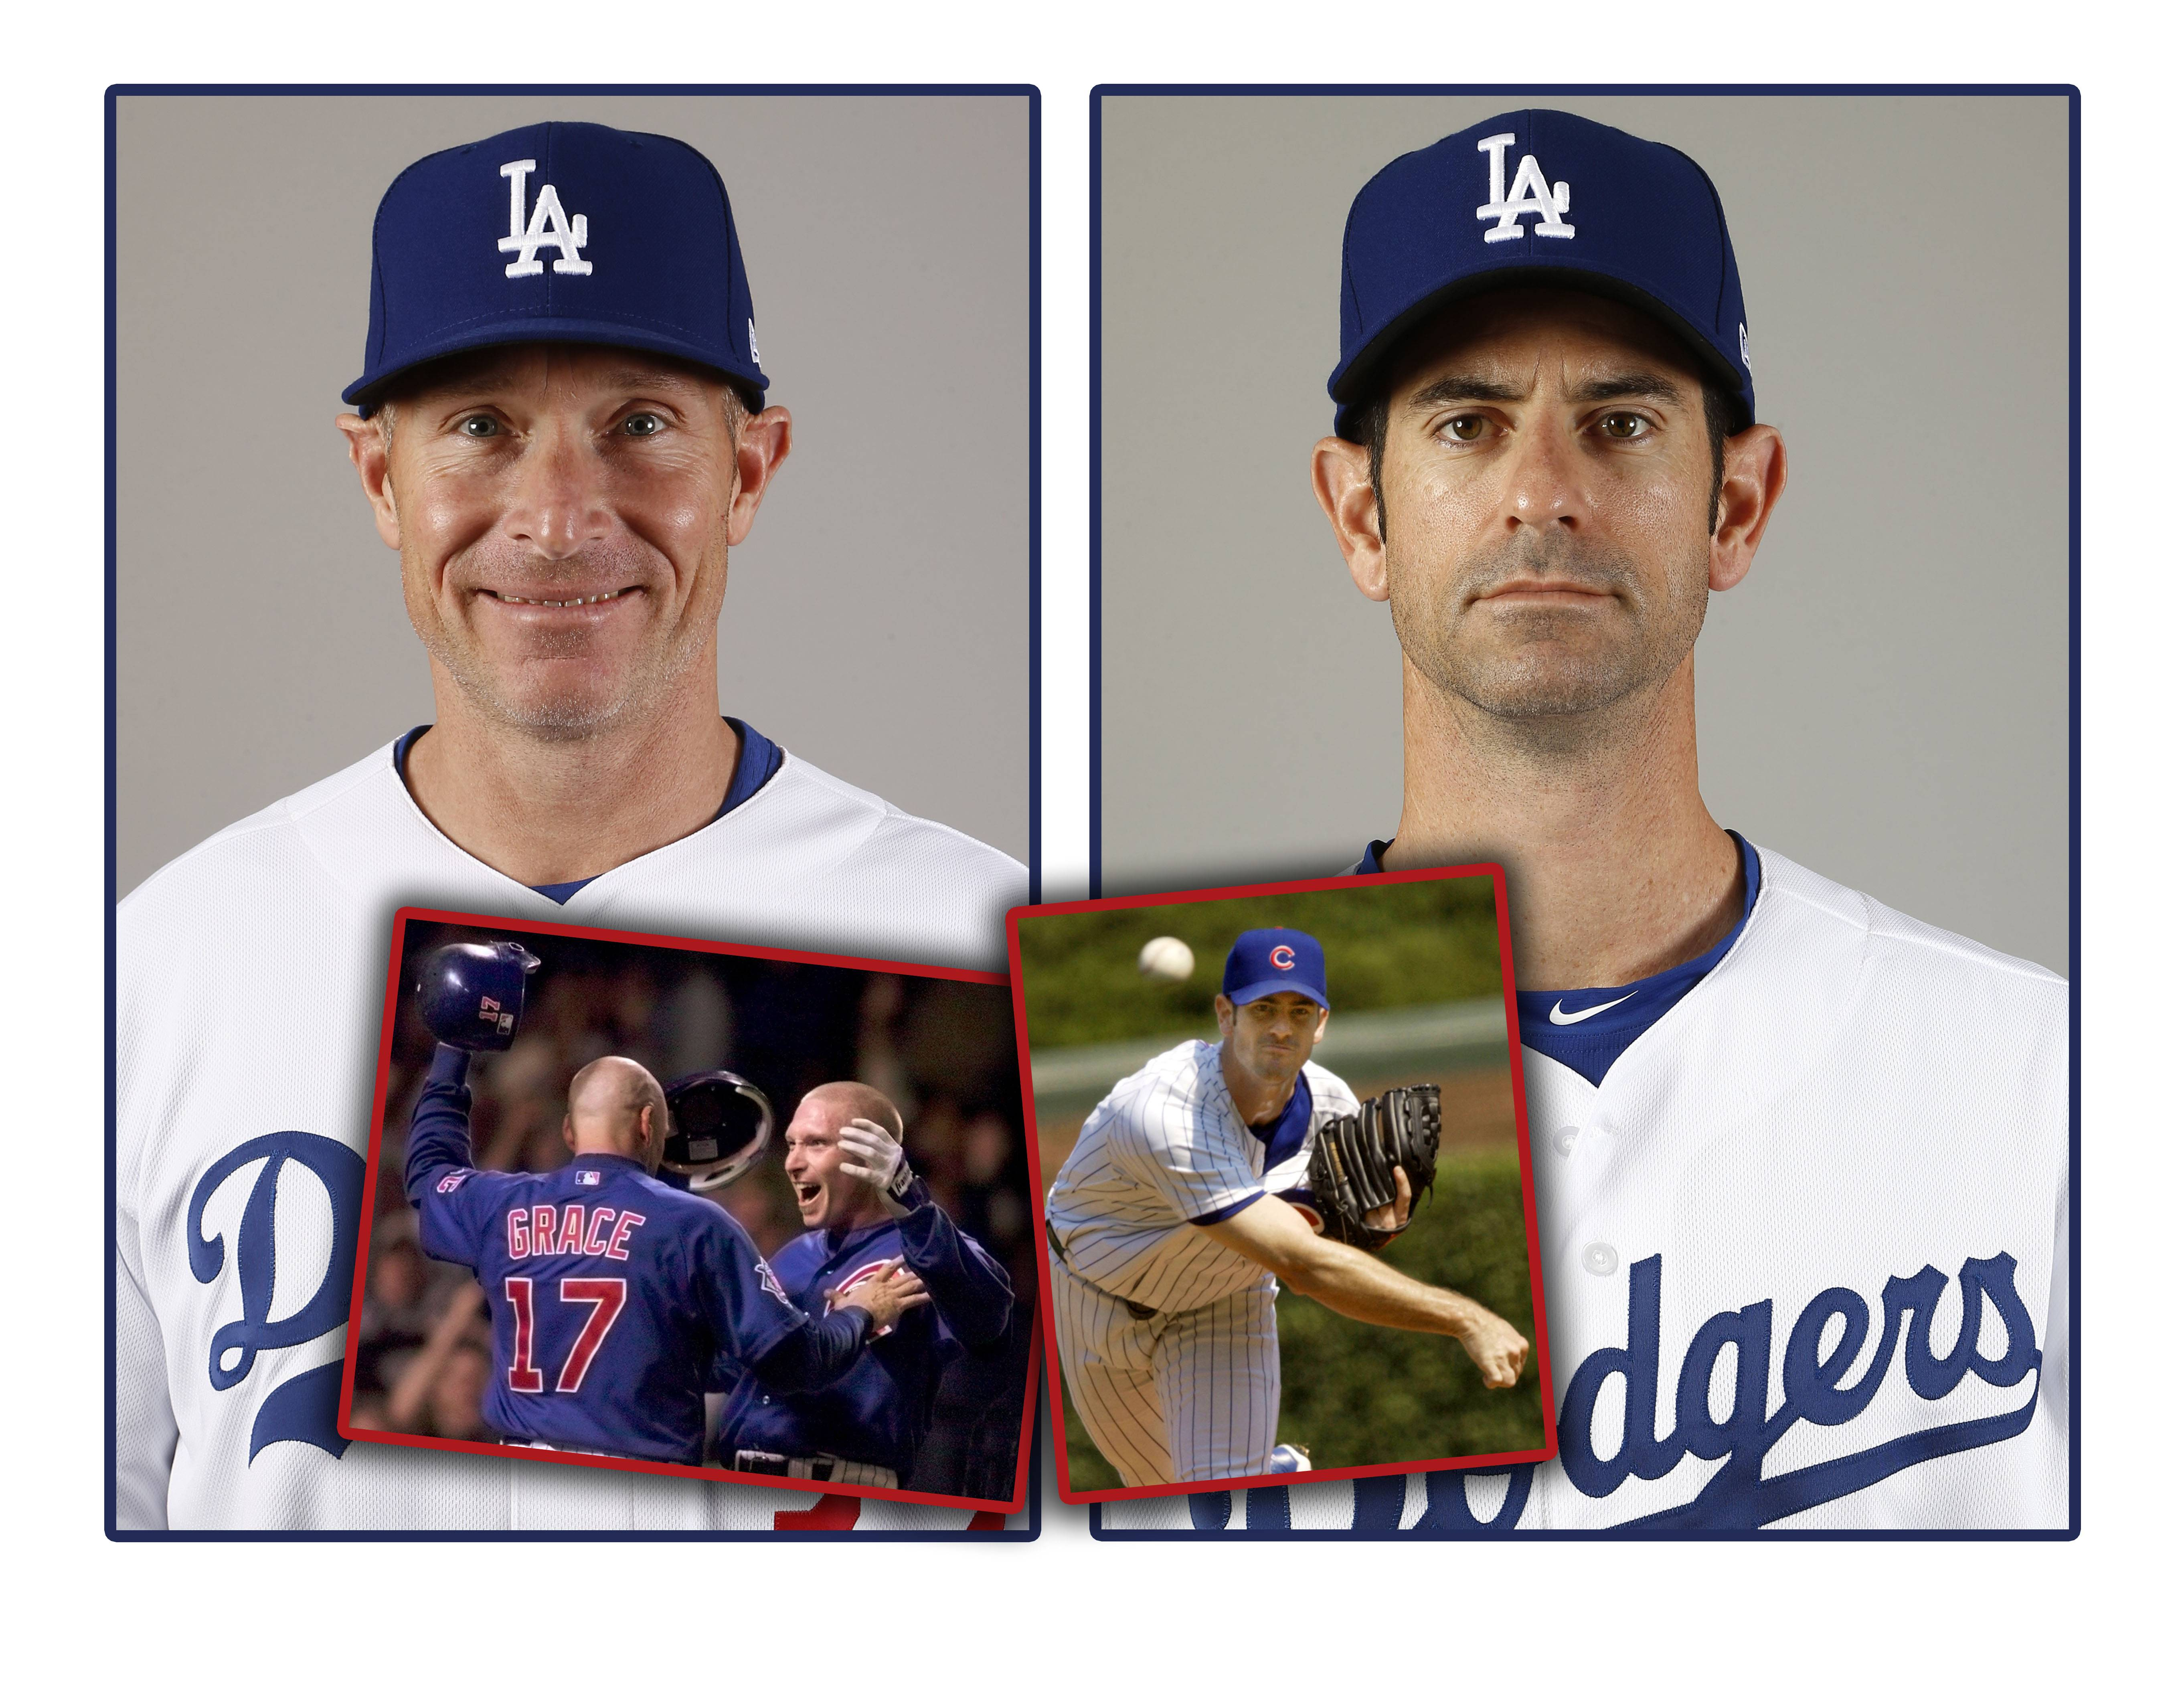 LEFT: Los Angeles Dodgers assistant hitting coach Brant Brown. LEFT INSET: Mark Grace greets Cubs teammate Brant Brown at home plate as Brown scores the winning run after a wild pitch at Wrigley Field. RIGHT: Dodgers bullpen coach Mark Prior. RIGHT INSET: Mark Prior pitches for the Cubs against the Cardinals on Aug. 31, 2002.